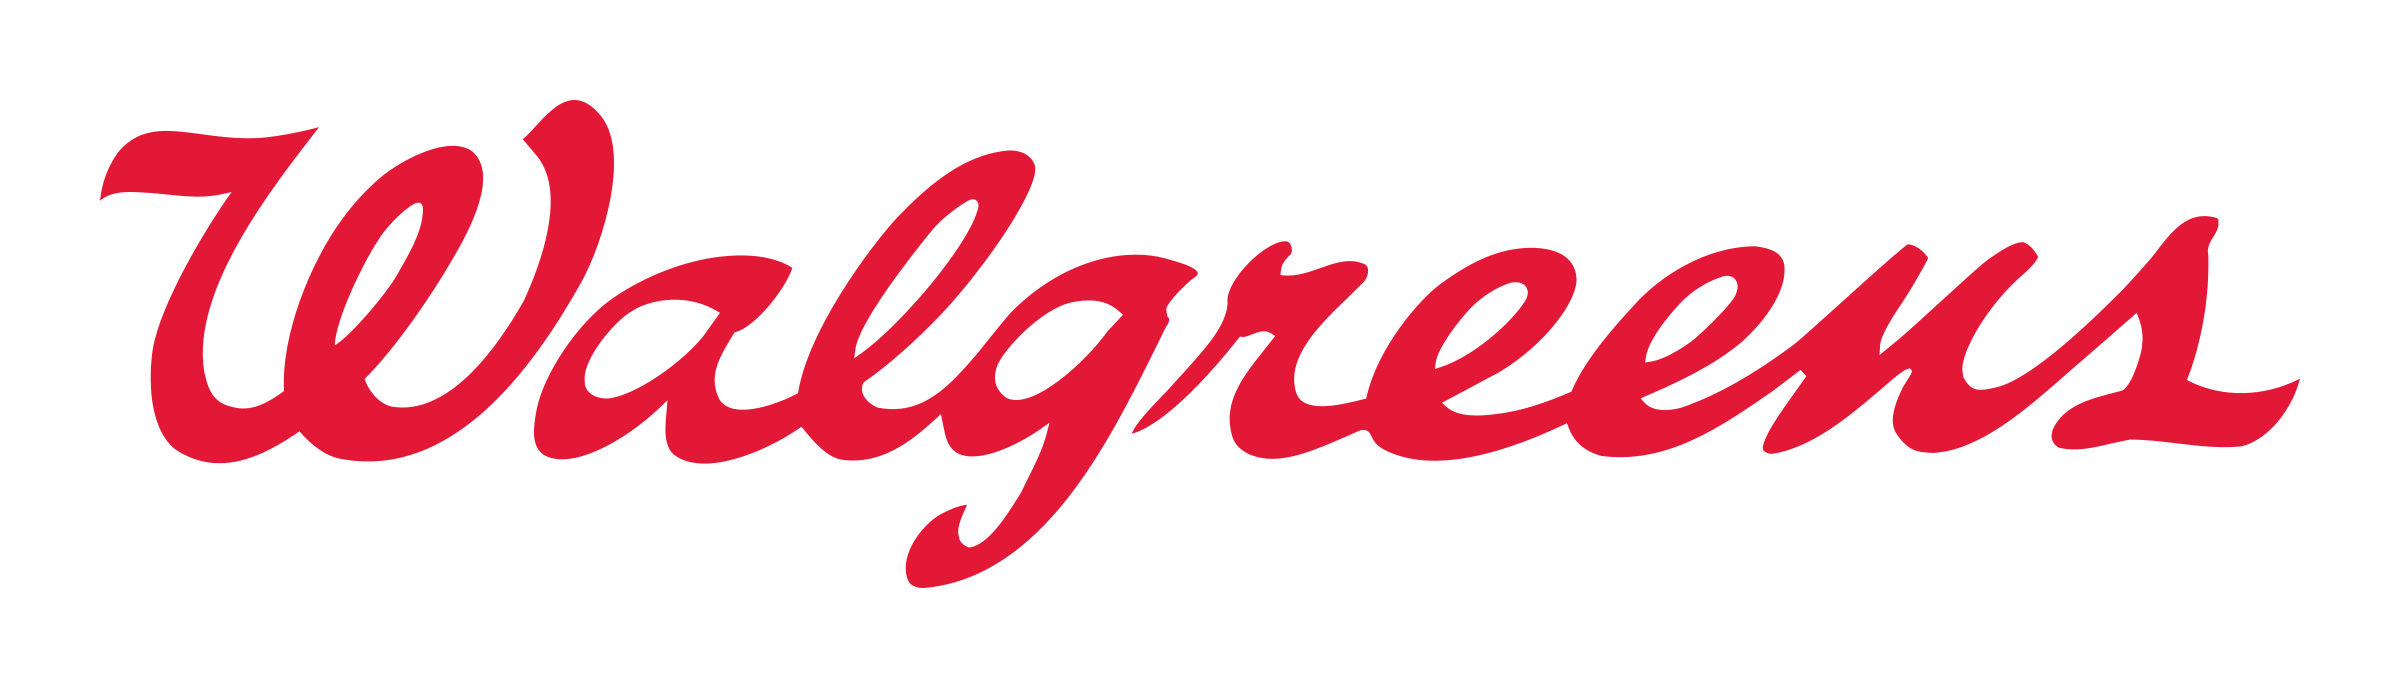 walgreens-logo-png-transparent.png